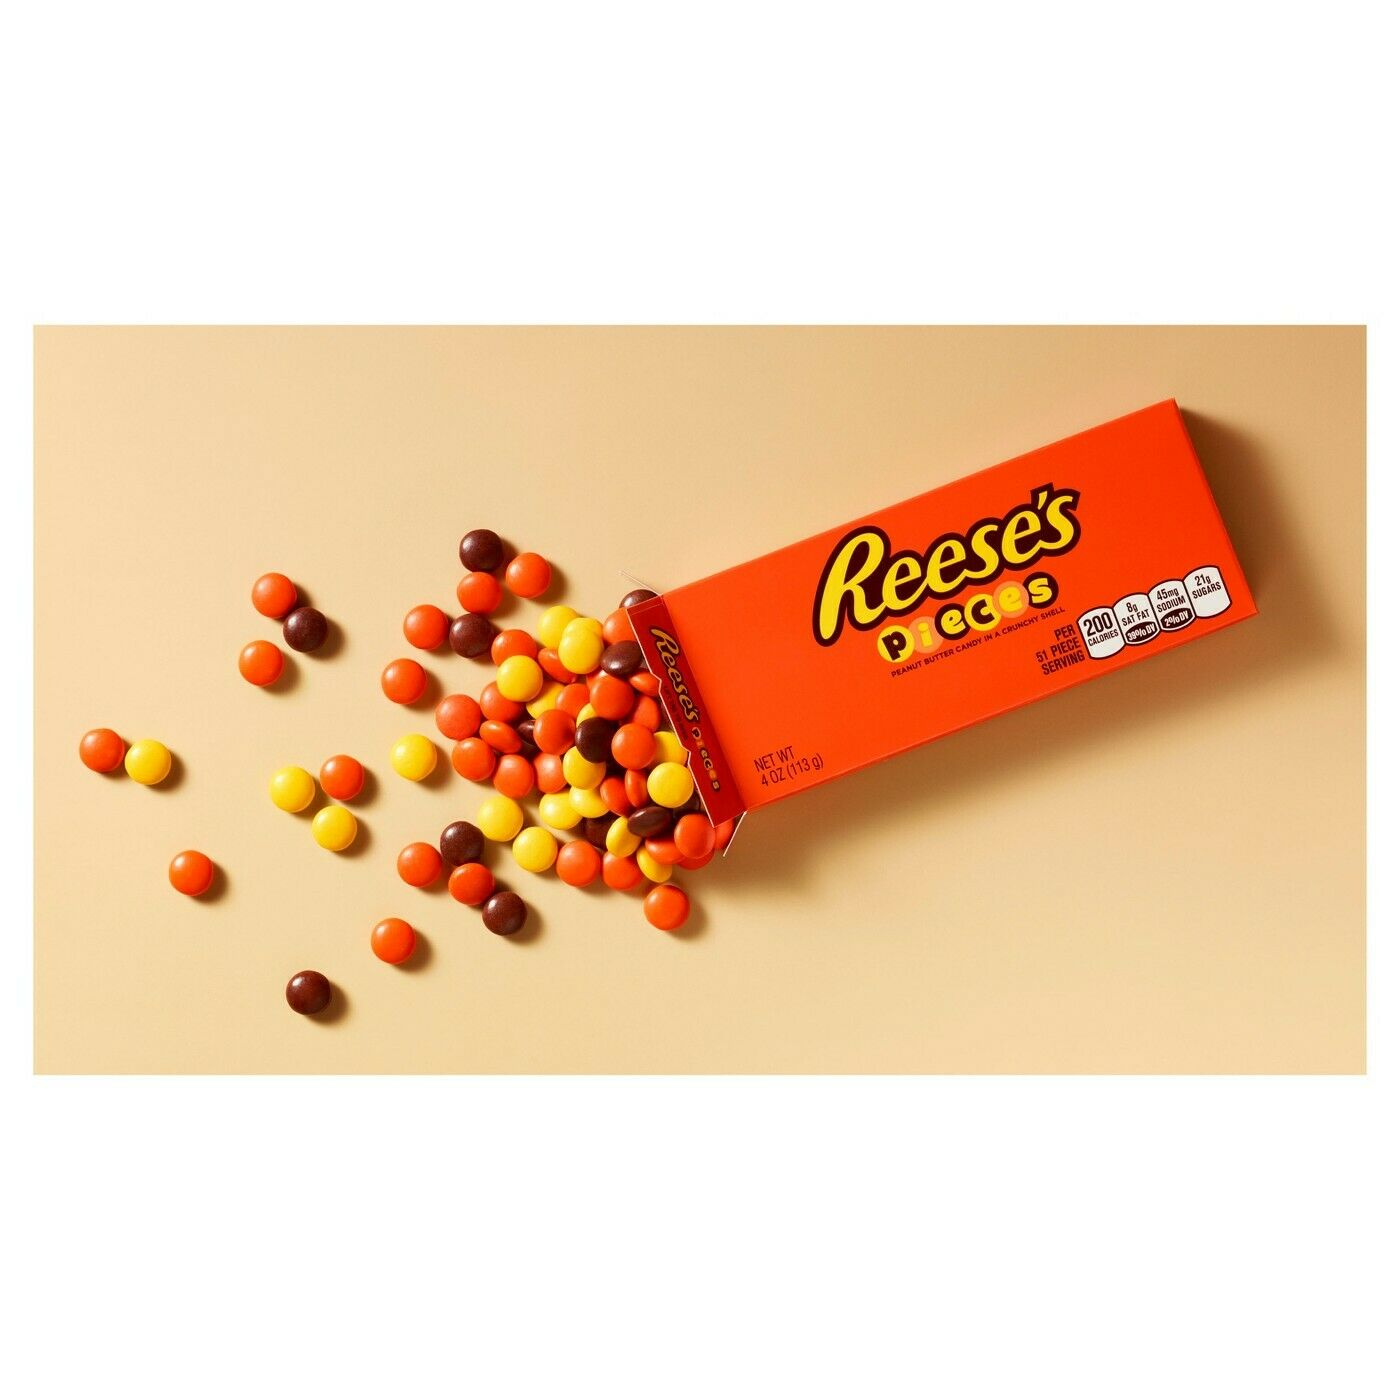 Reese's Pieces Peanut Butter Candies, Theater Box, 4oz